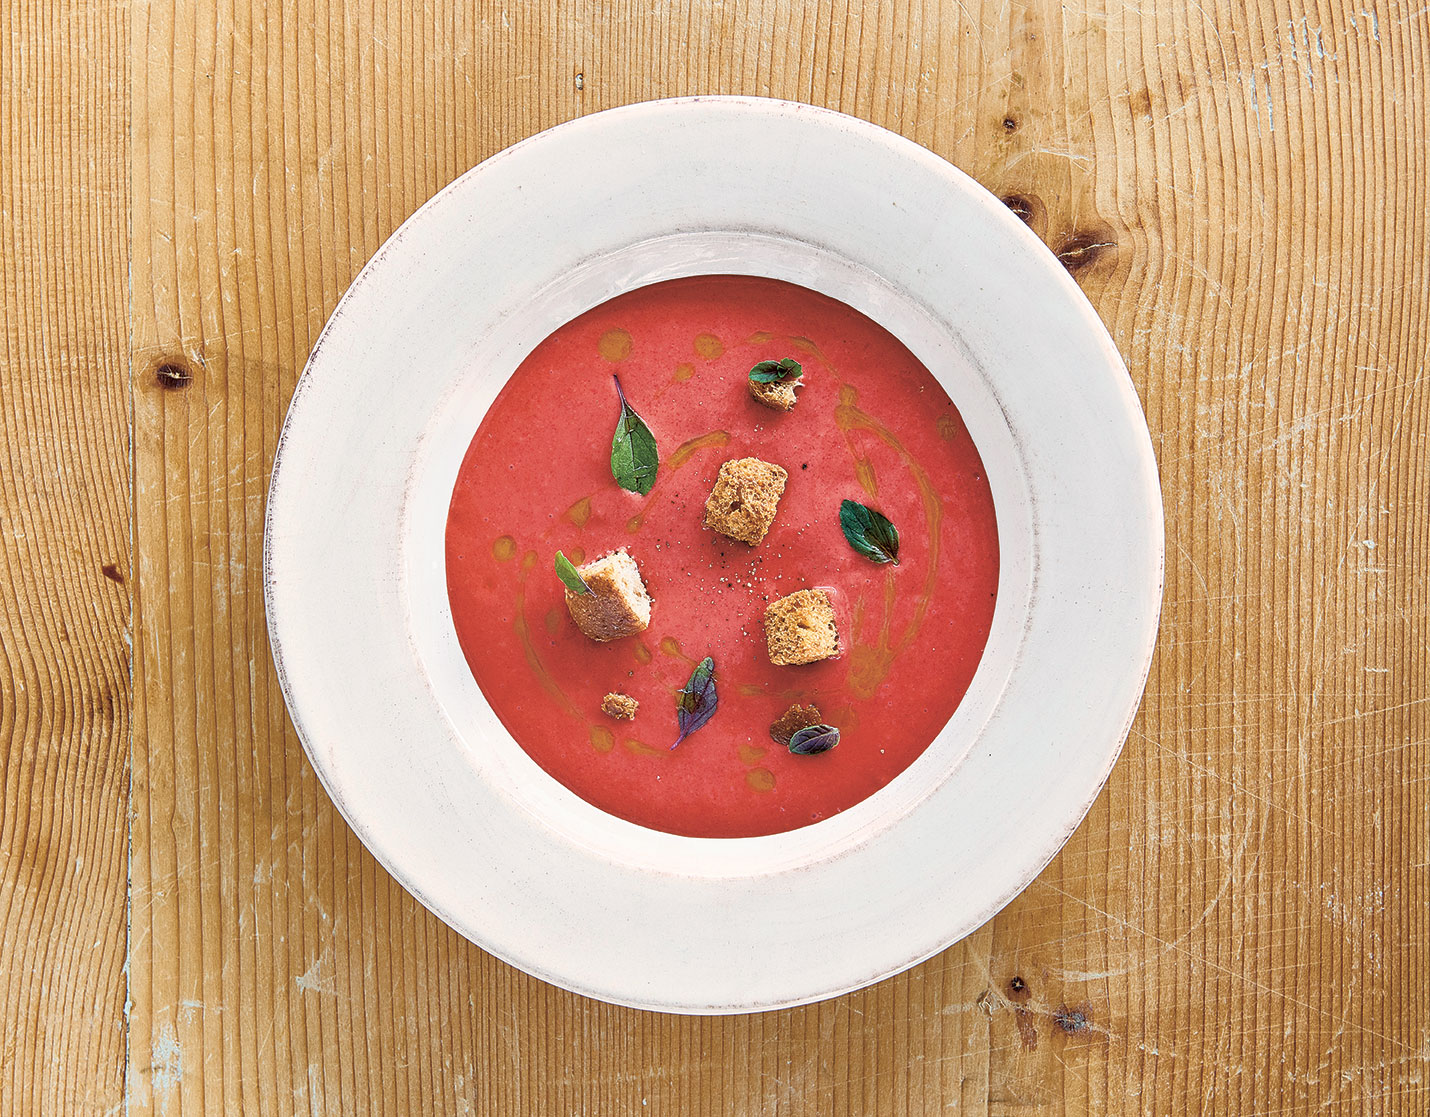 Daniel Humm's strawberry gazpacho, as featured in Bread is Gold